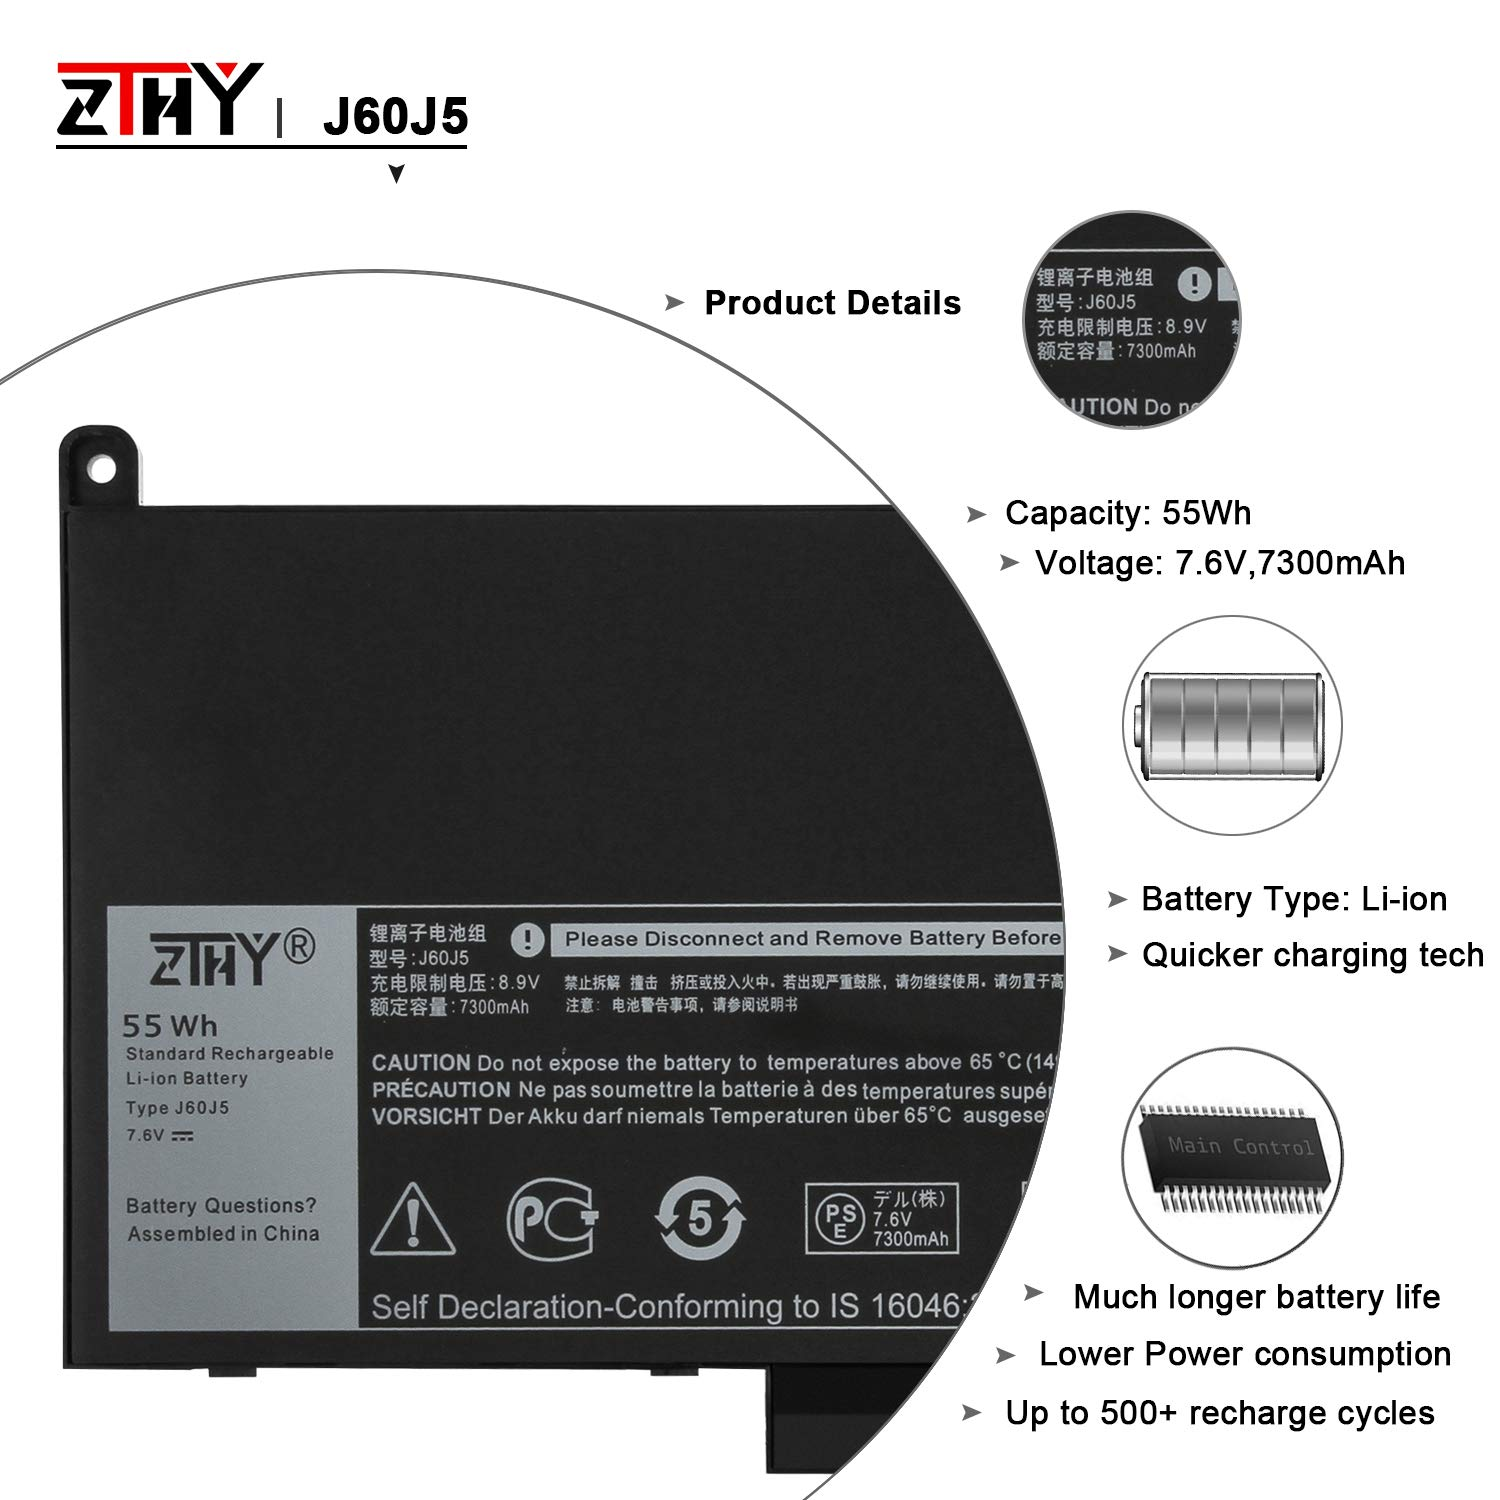 ZTHY J60J5 Laptop Battery Replacement for Dell Latitude E7270 E7470 Series Notebook R1V85 451-BBSX 451-BBSY 451-BBSU MC34Y 242WD PDNM2 7.6V 55WH by ZTHY (Image #2)